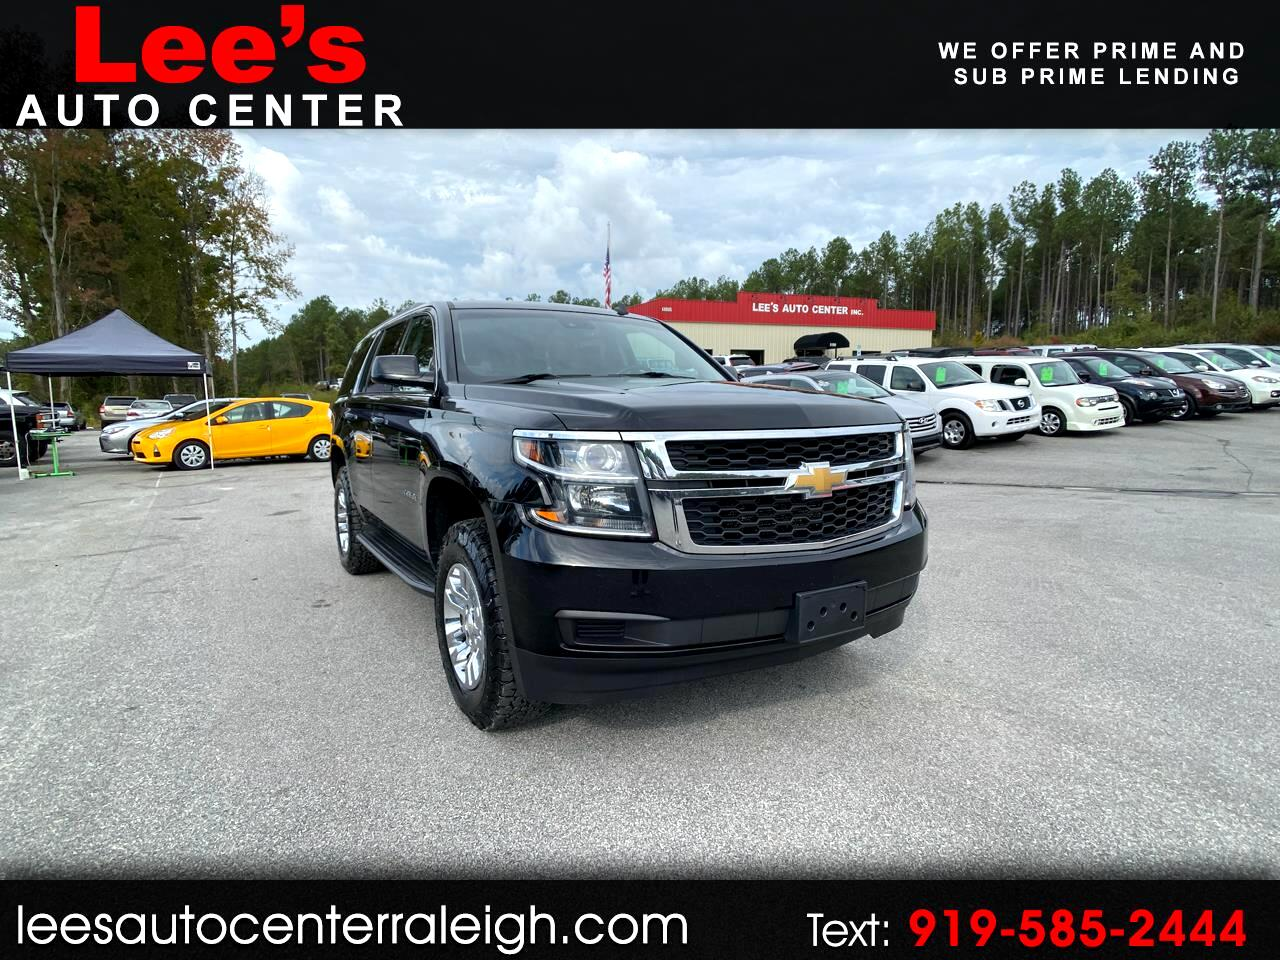 Used Cars In Raleigh Nc >> Used Cars For Sale Raleigh Nc 27603 Lee S Auto Center